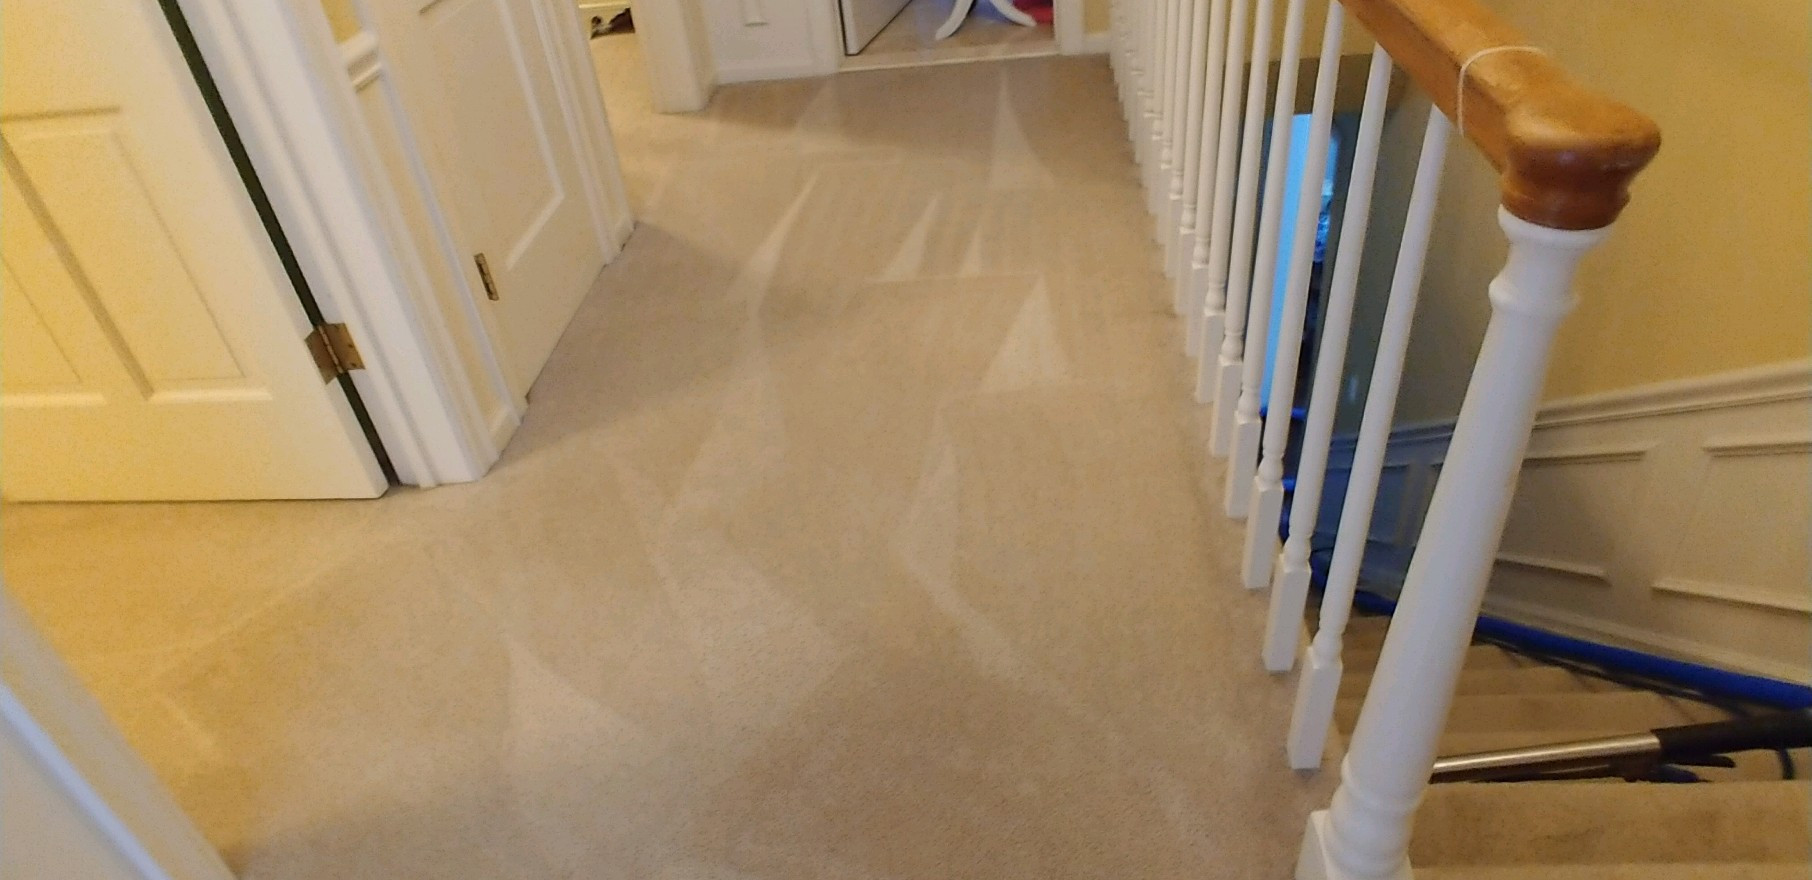 Professional Carpet Cleaning In West Bloomfield Michigan